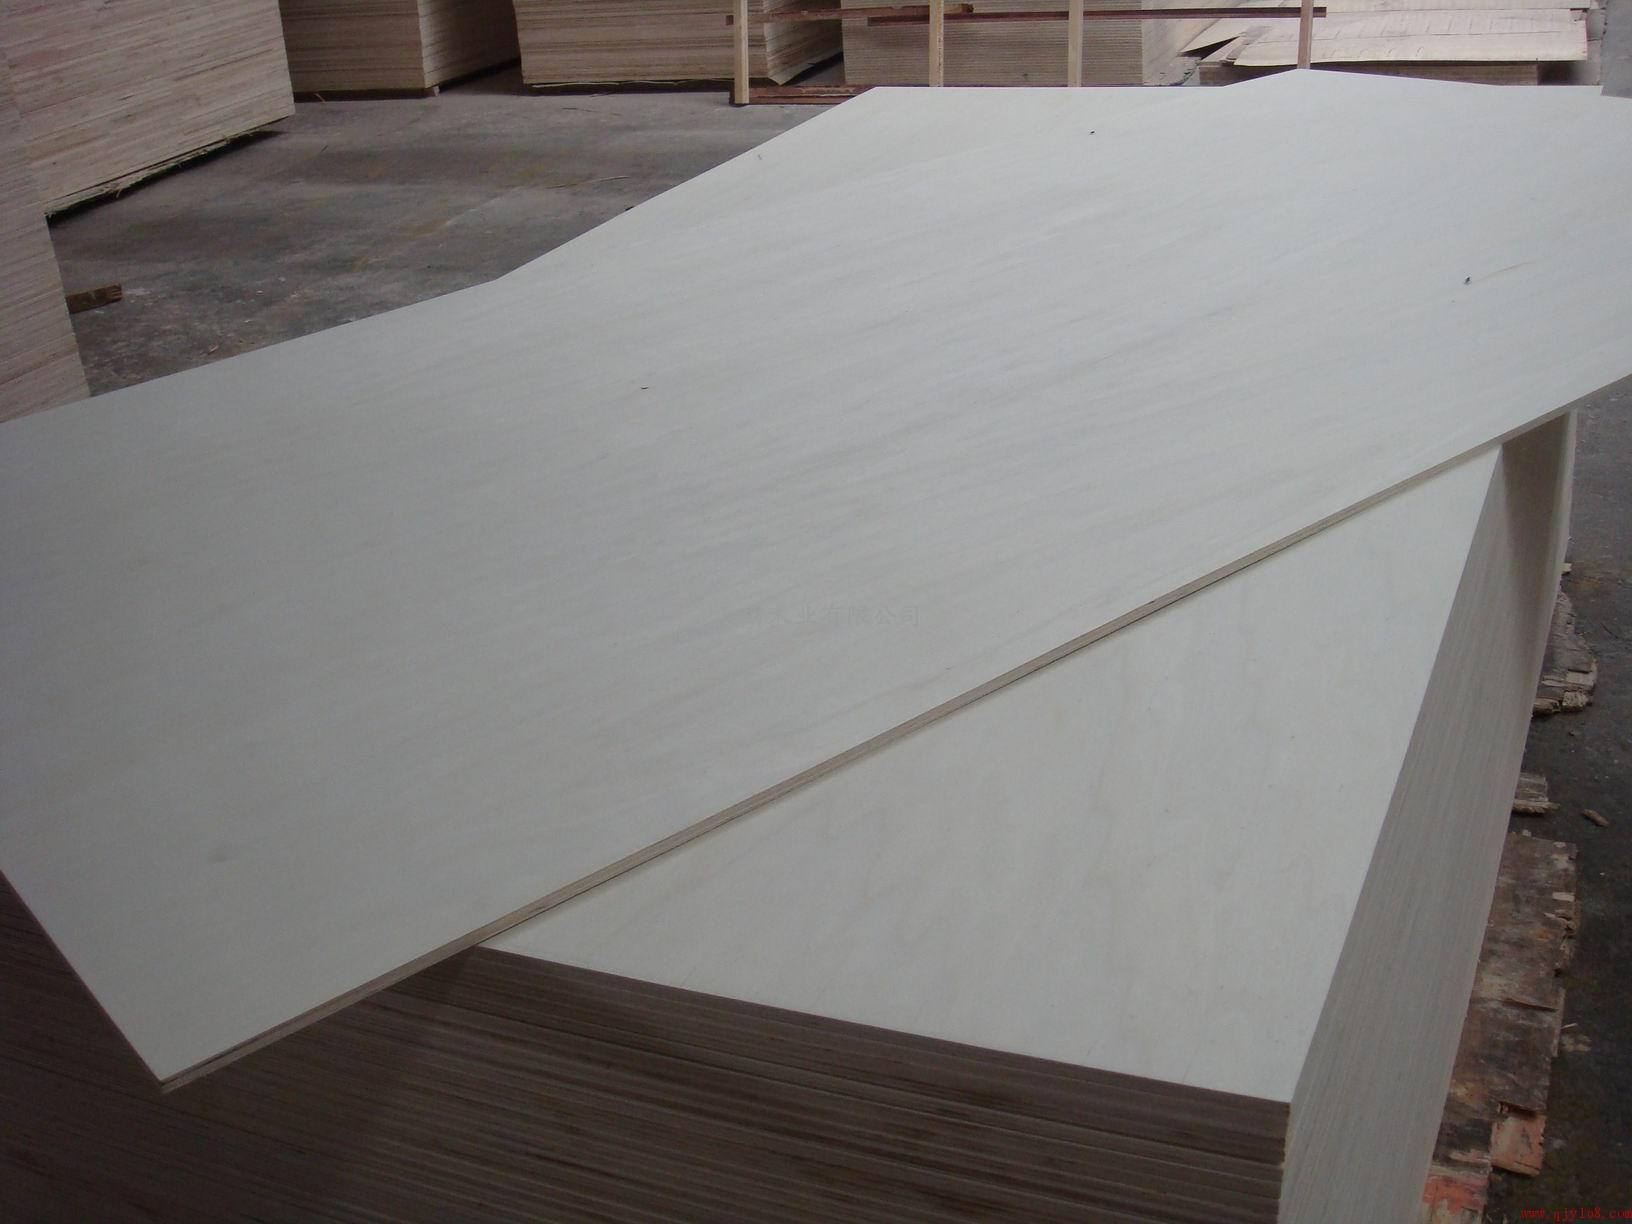 Commercial Plywood-Bintangor, Okoume, Hardwood, Pine, Birch